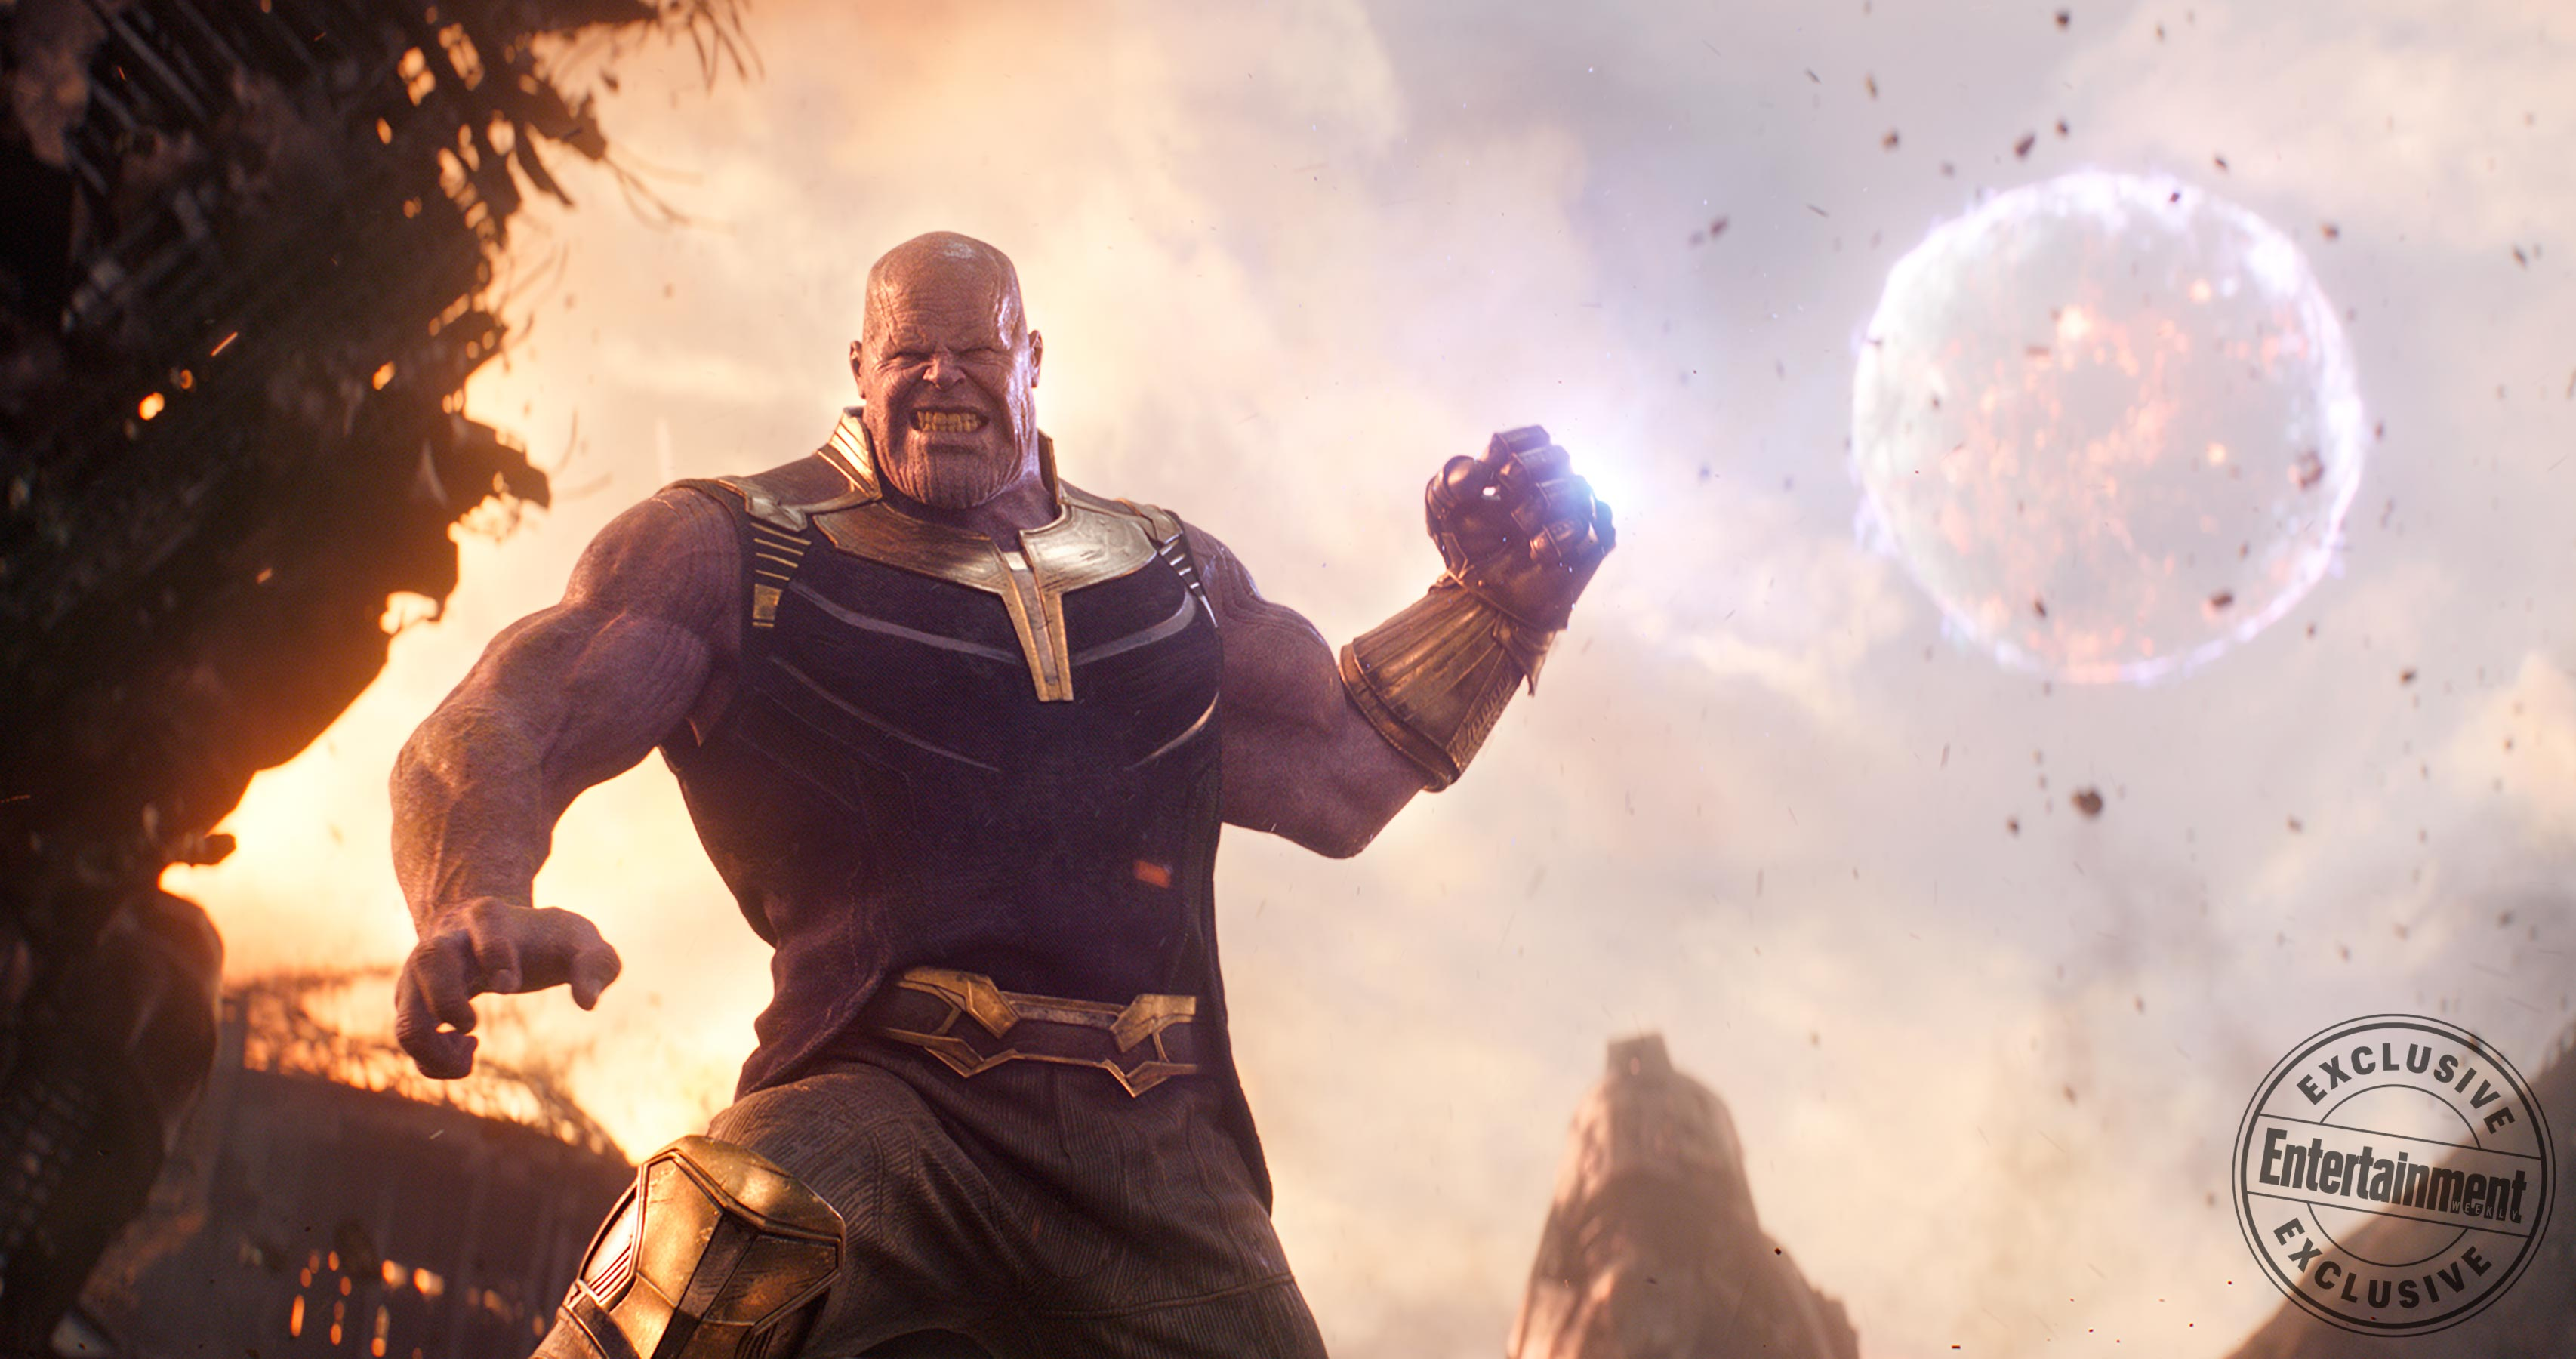 8 New Images From Avengers Infinity War Include Thanos Throwing A